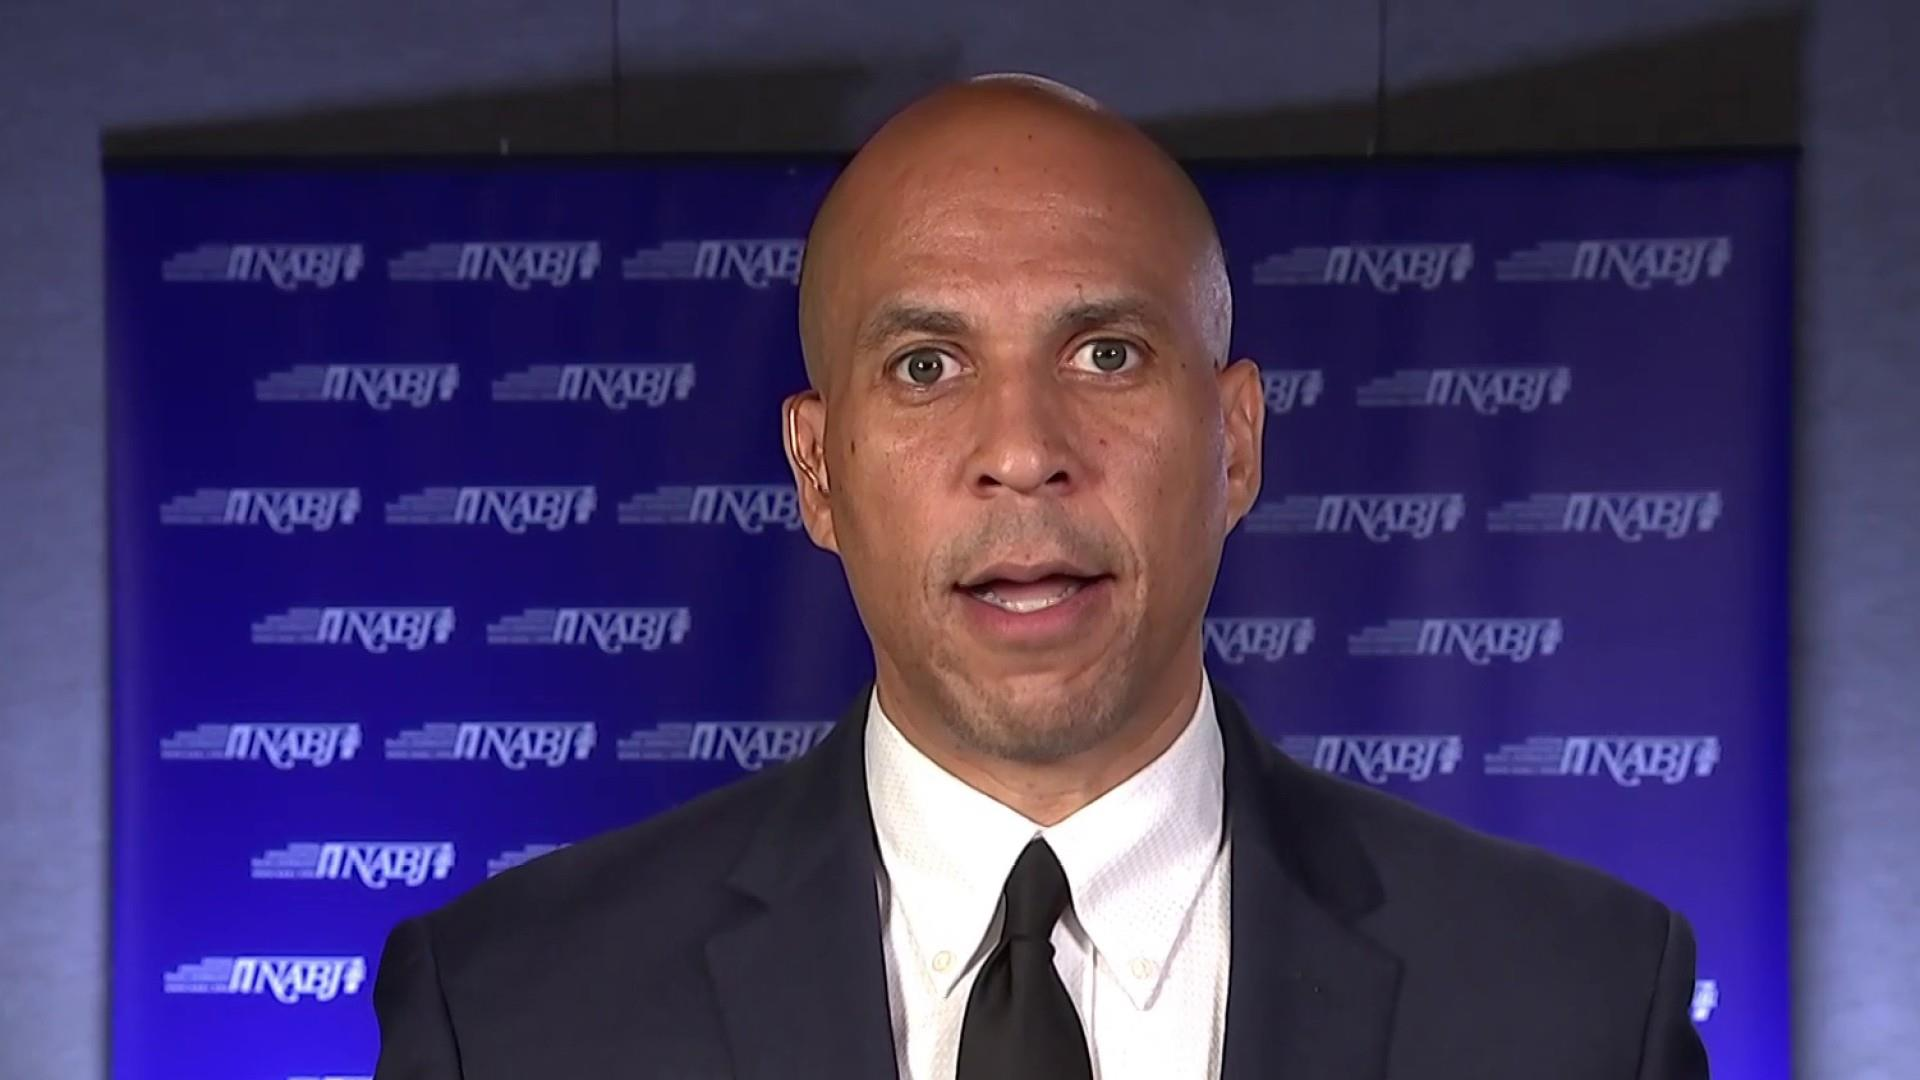 Booker: 'If there's injustice in this country, it's a threat to all of us.'